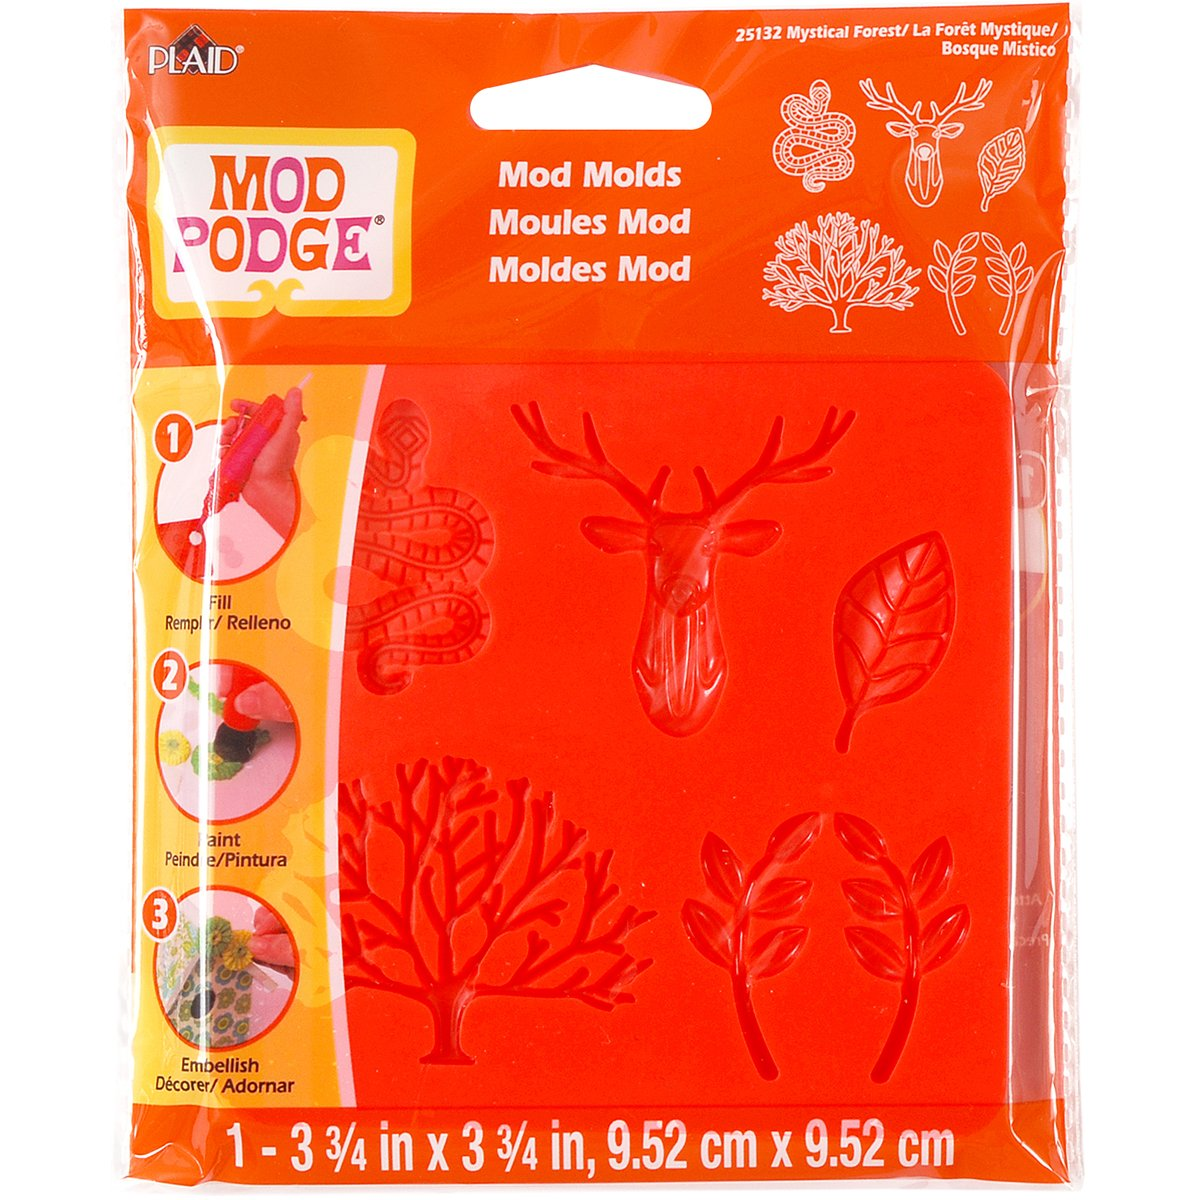 Mod Podge Mod Mold (3-3/4 by 3-3/4-Inch), 25132 Mystical Forest Plaid Inc glue top coat craft adhesive embellishments